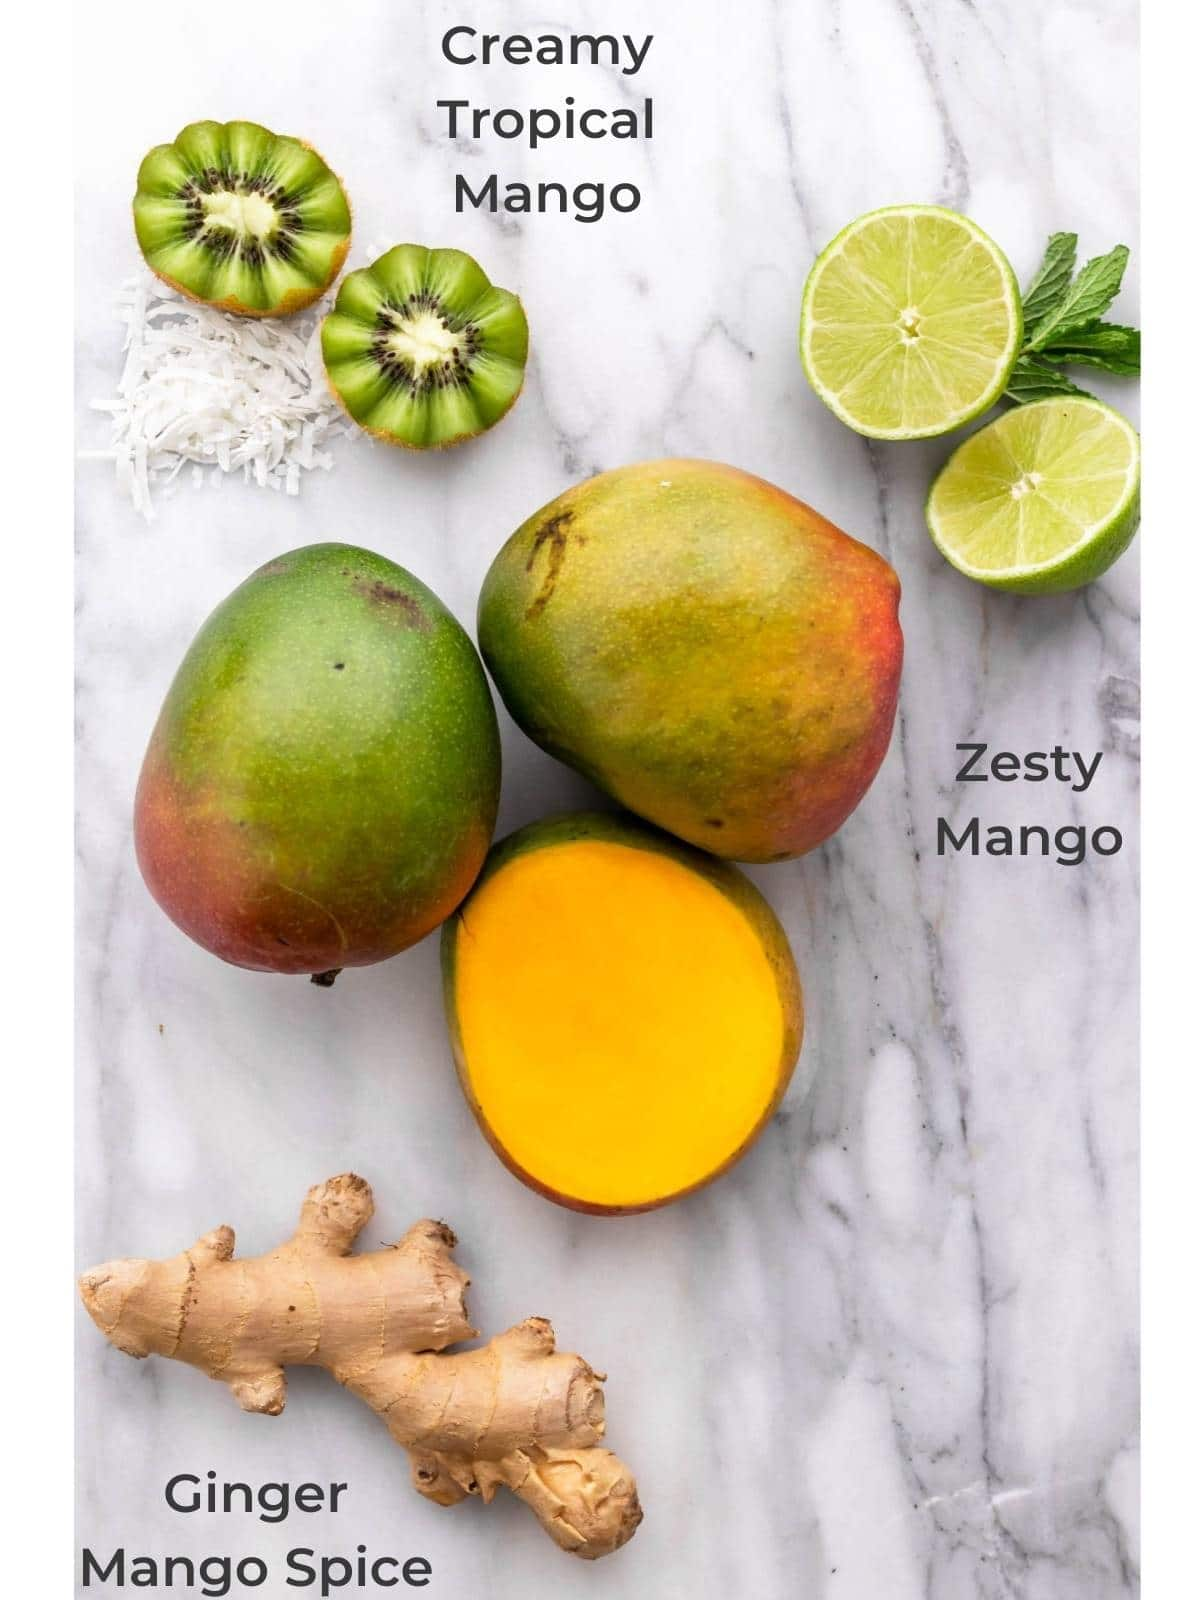 ripe mango, ginger root, kiwis, limes and mint